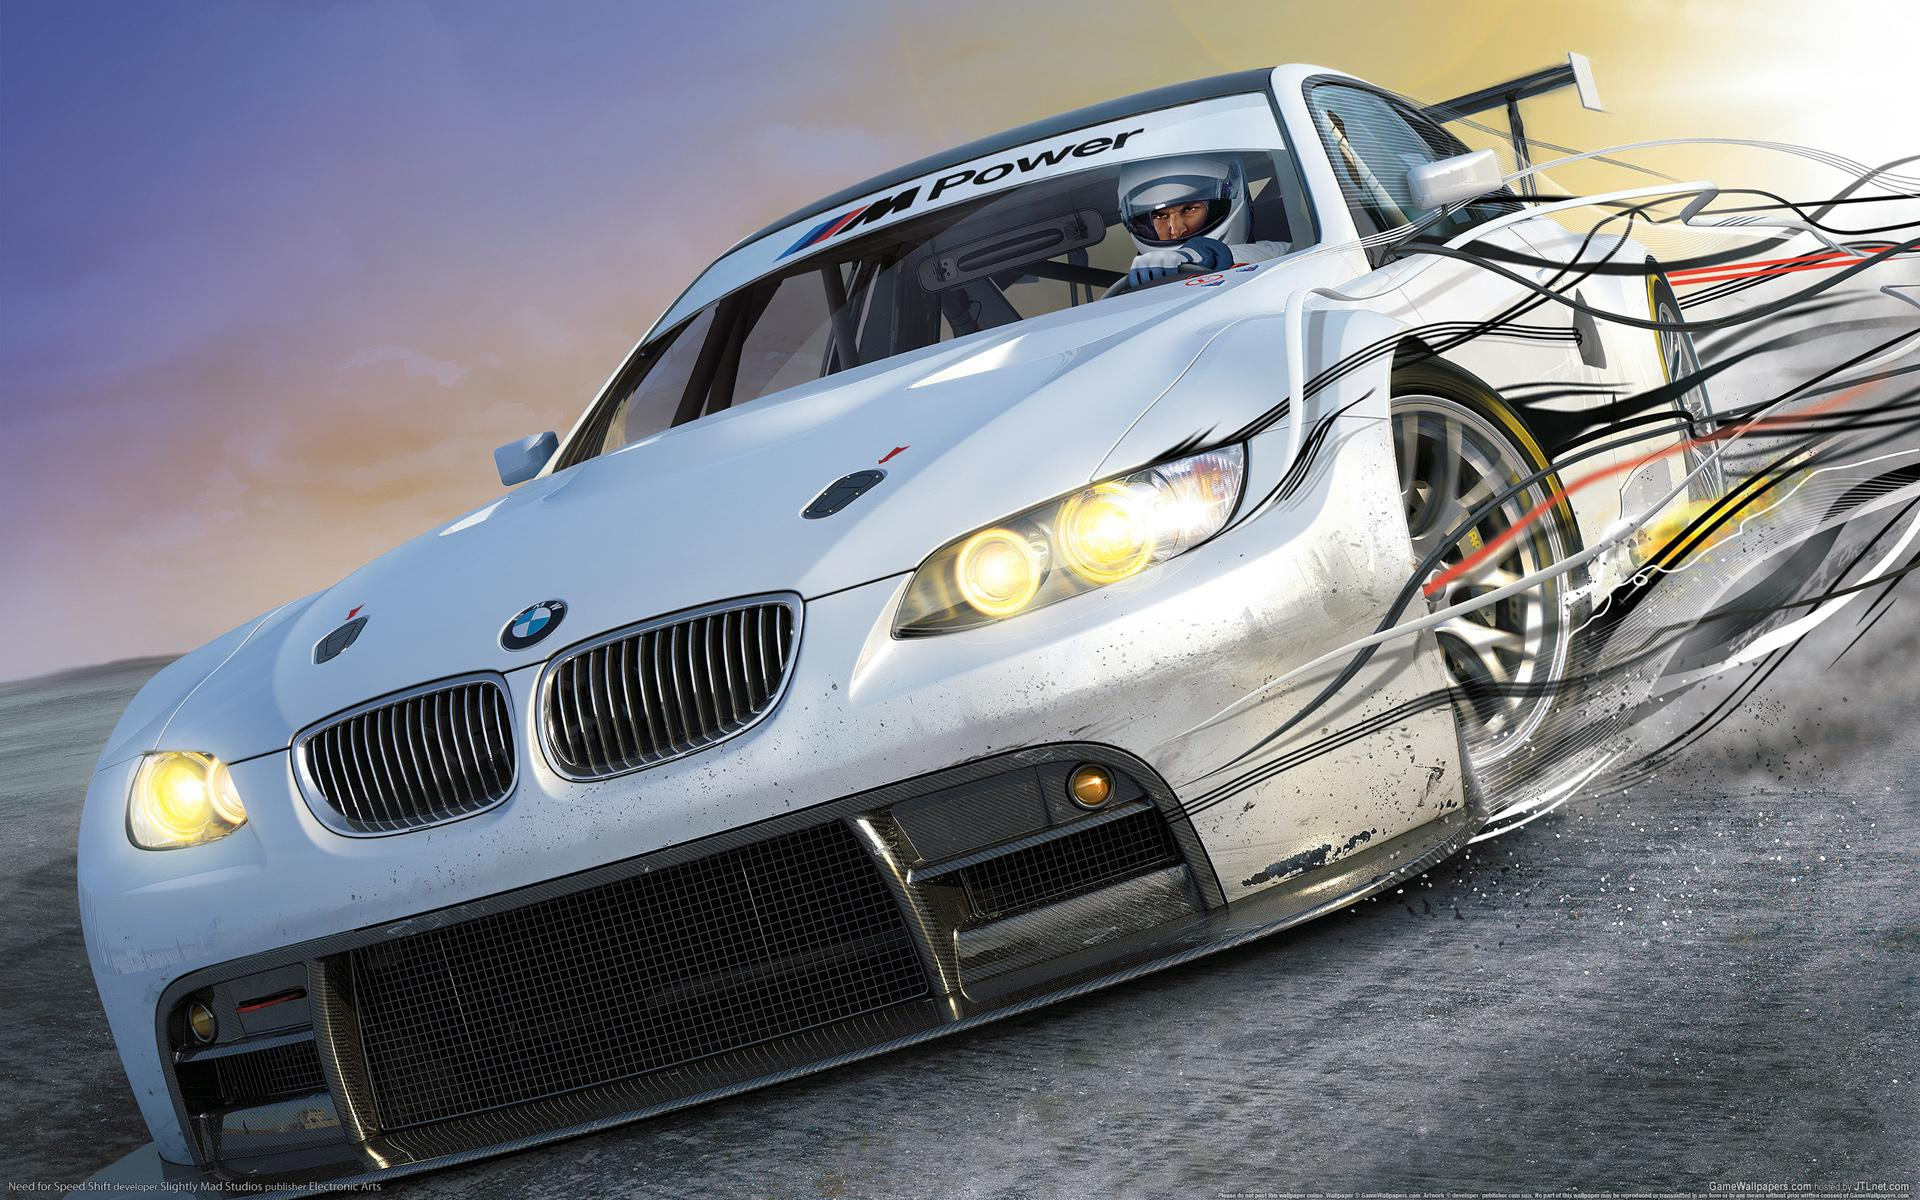 ���� ���������� ��� ����������� ���� Need for speed SHIFT 1920x1200